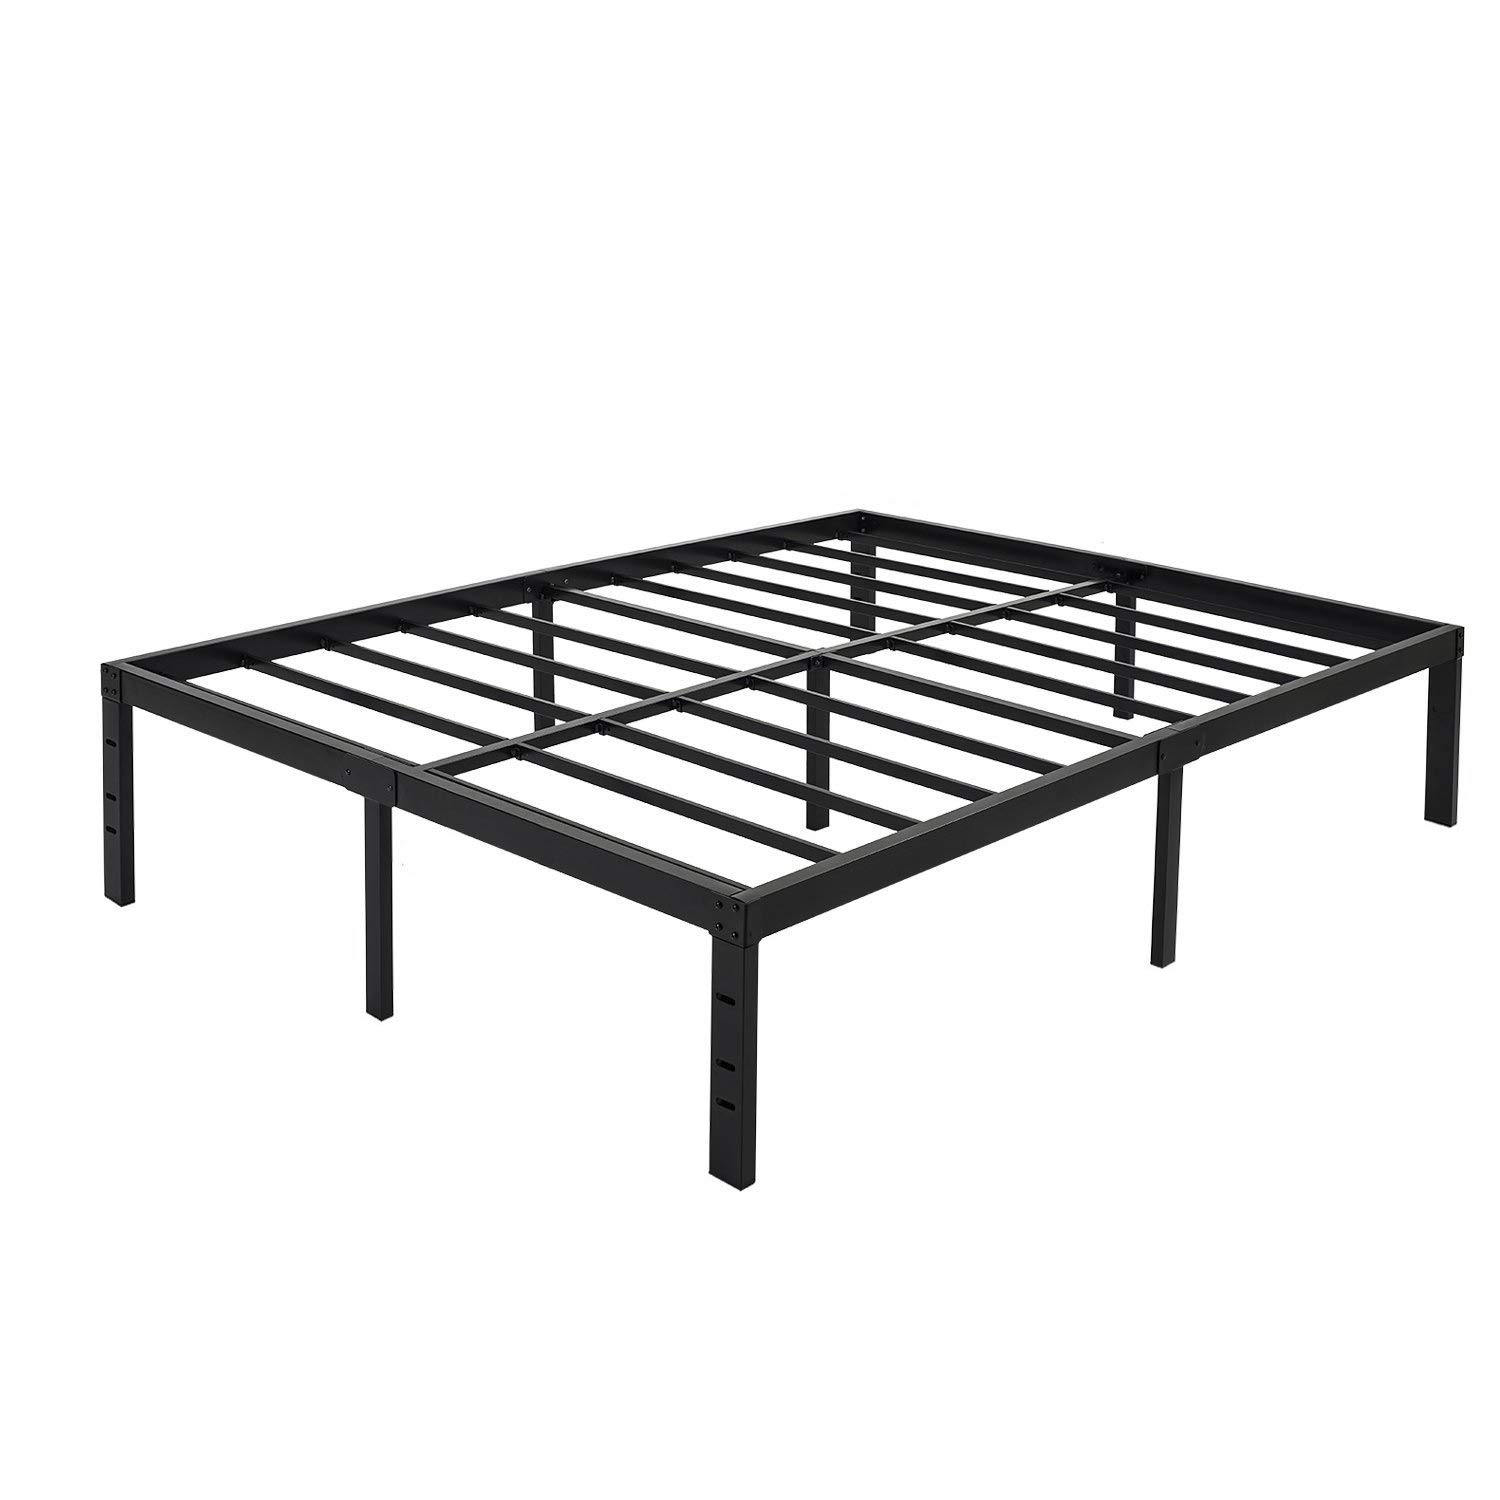 45MinST 18 Inch Maximum Storage Bed Frame Reinforced Platform 3500lbs Heavy Duty Easy Assembly Mattress Foundation Steel Slat Noise Free Twin Full Queen King Cal King Queen